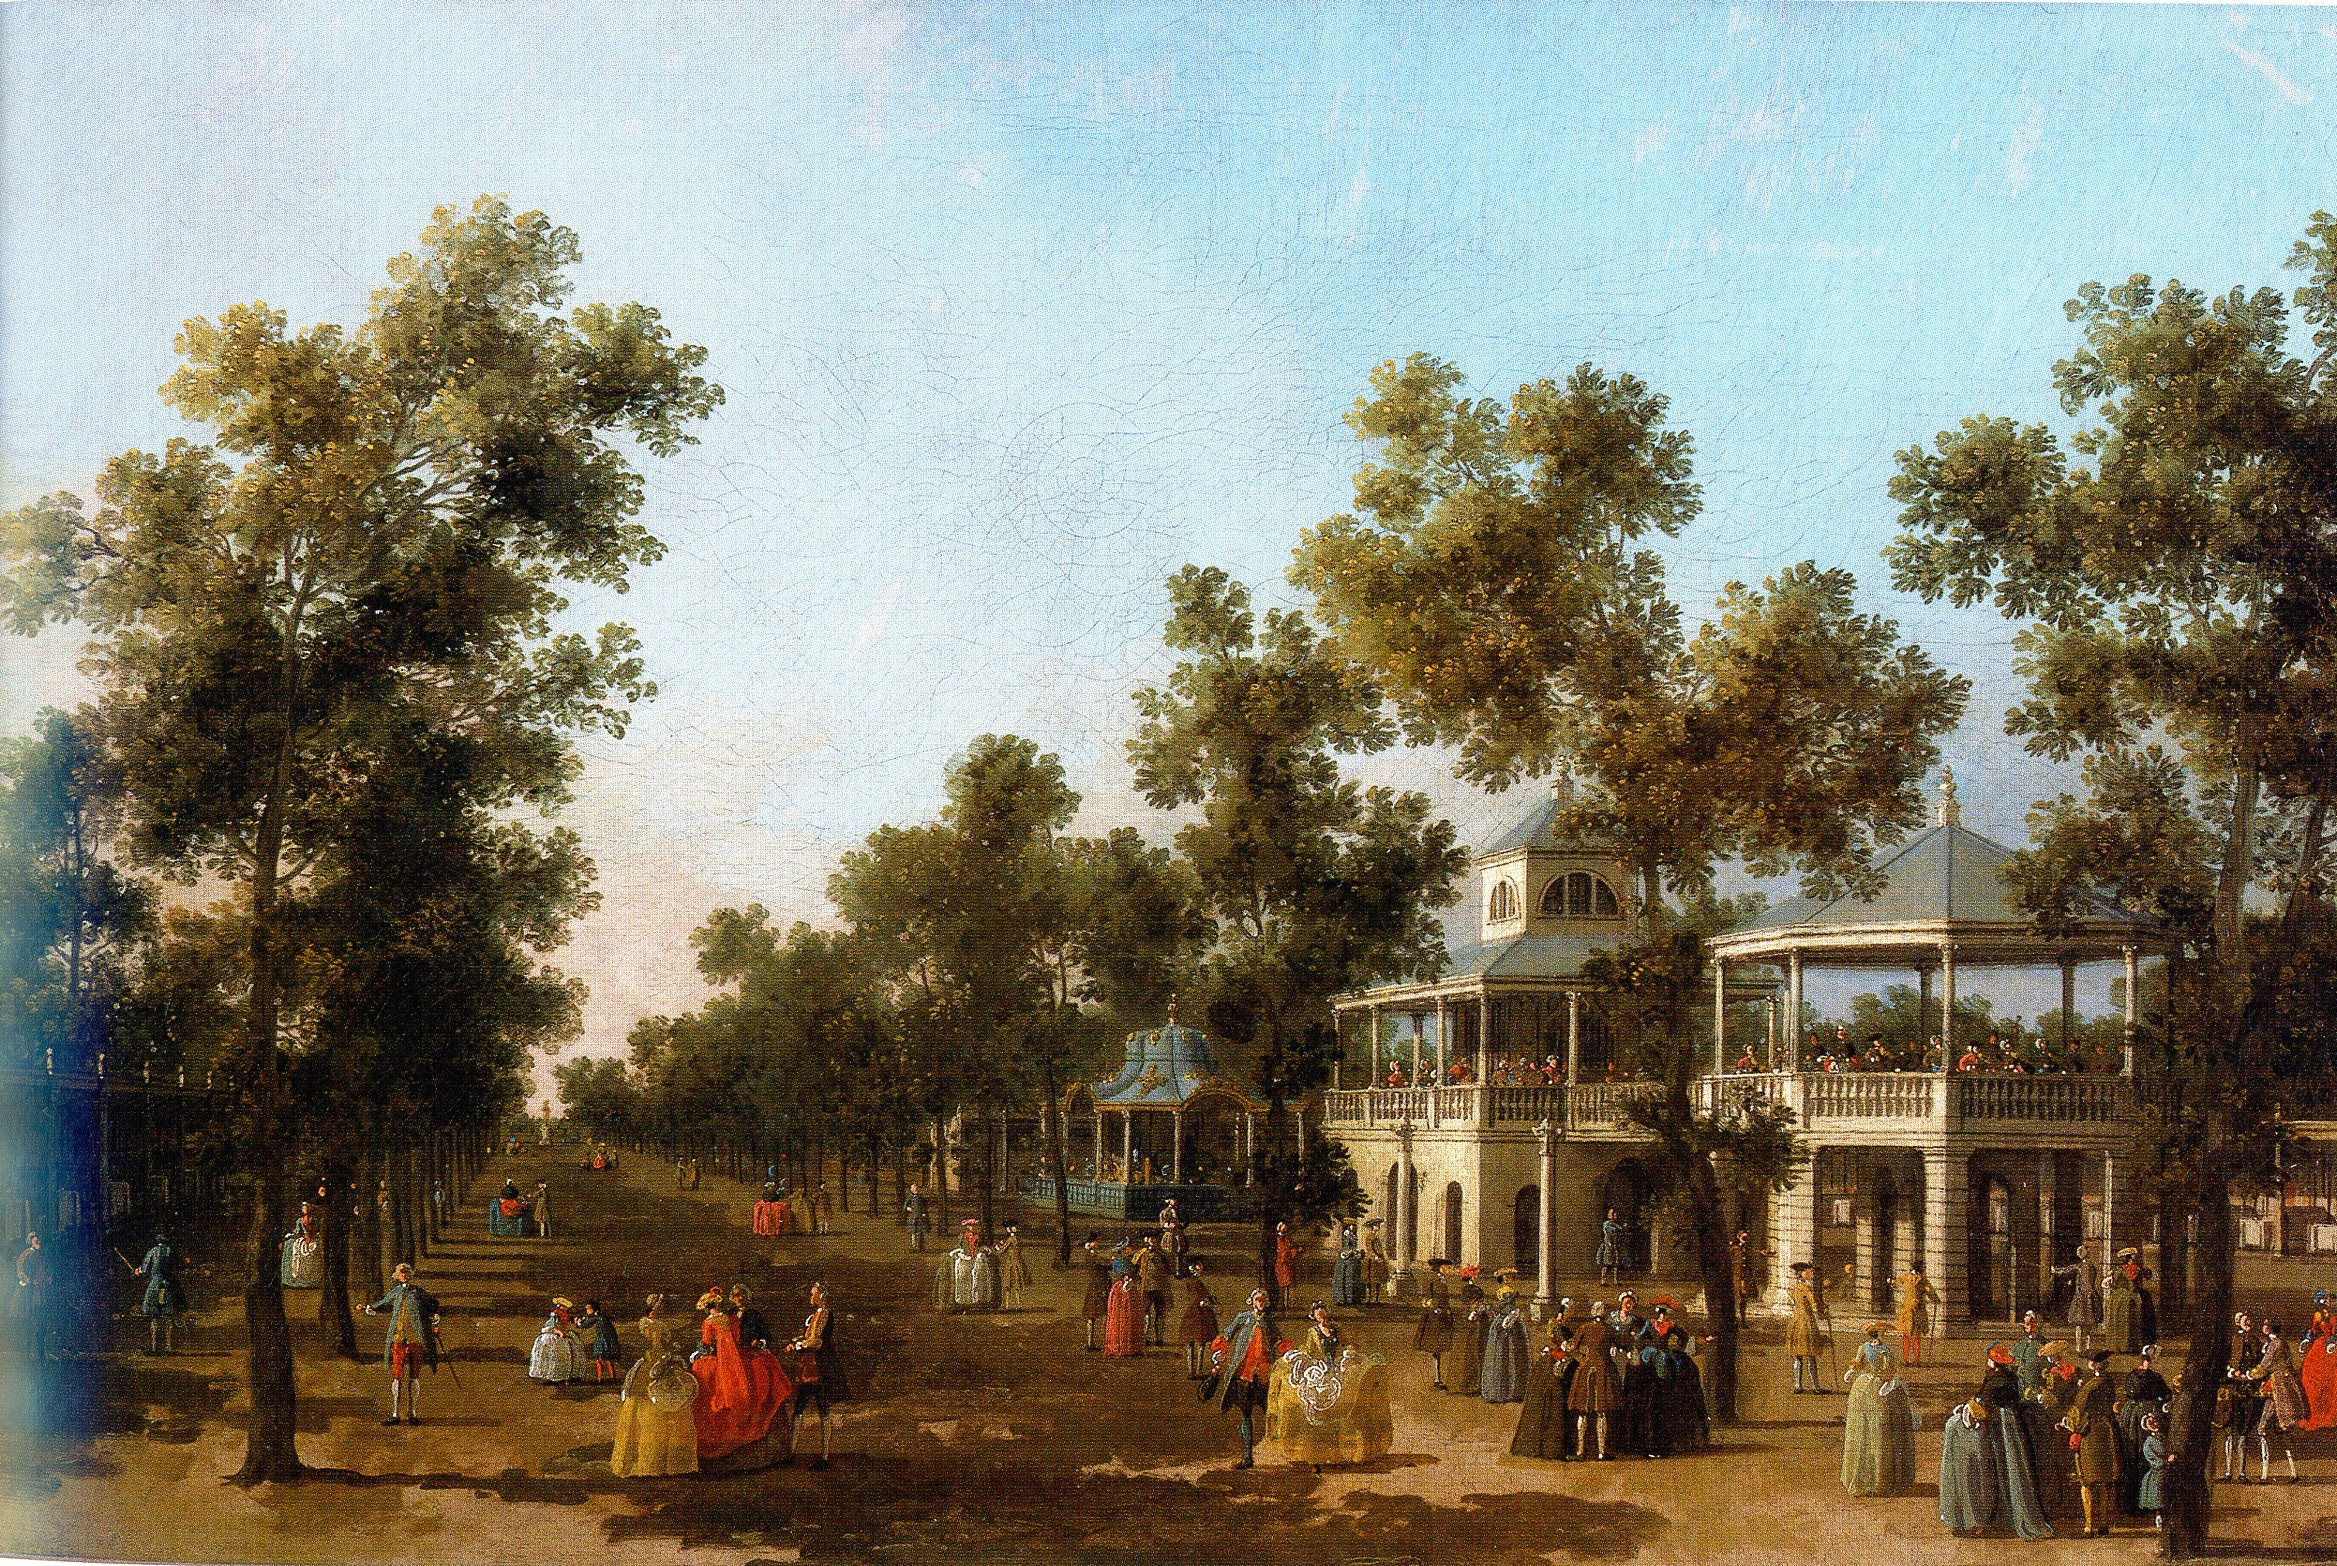 Vauxhall Gardens: The Organ, the Turkish Tent, and the Rotunda ...